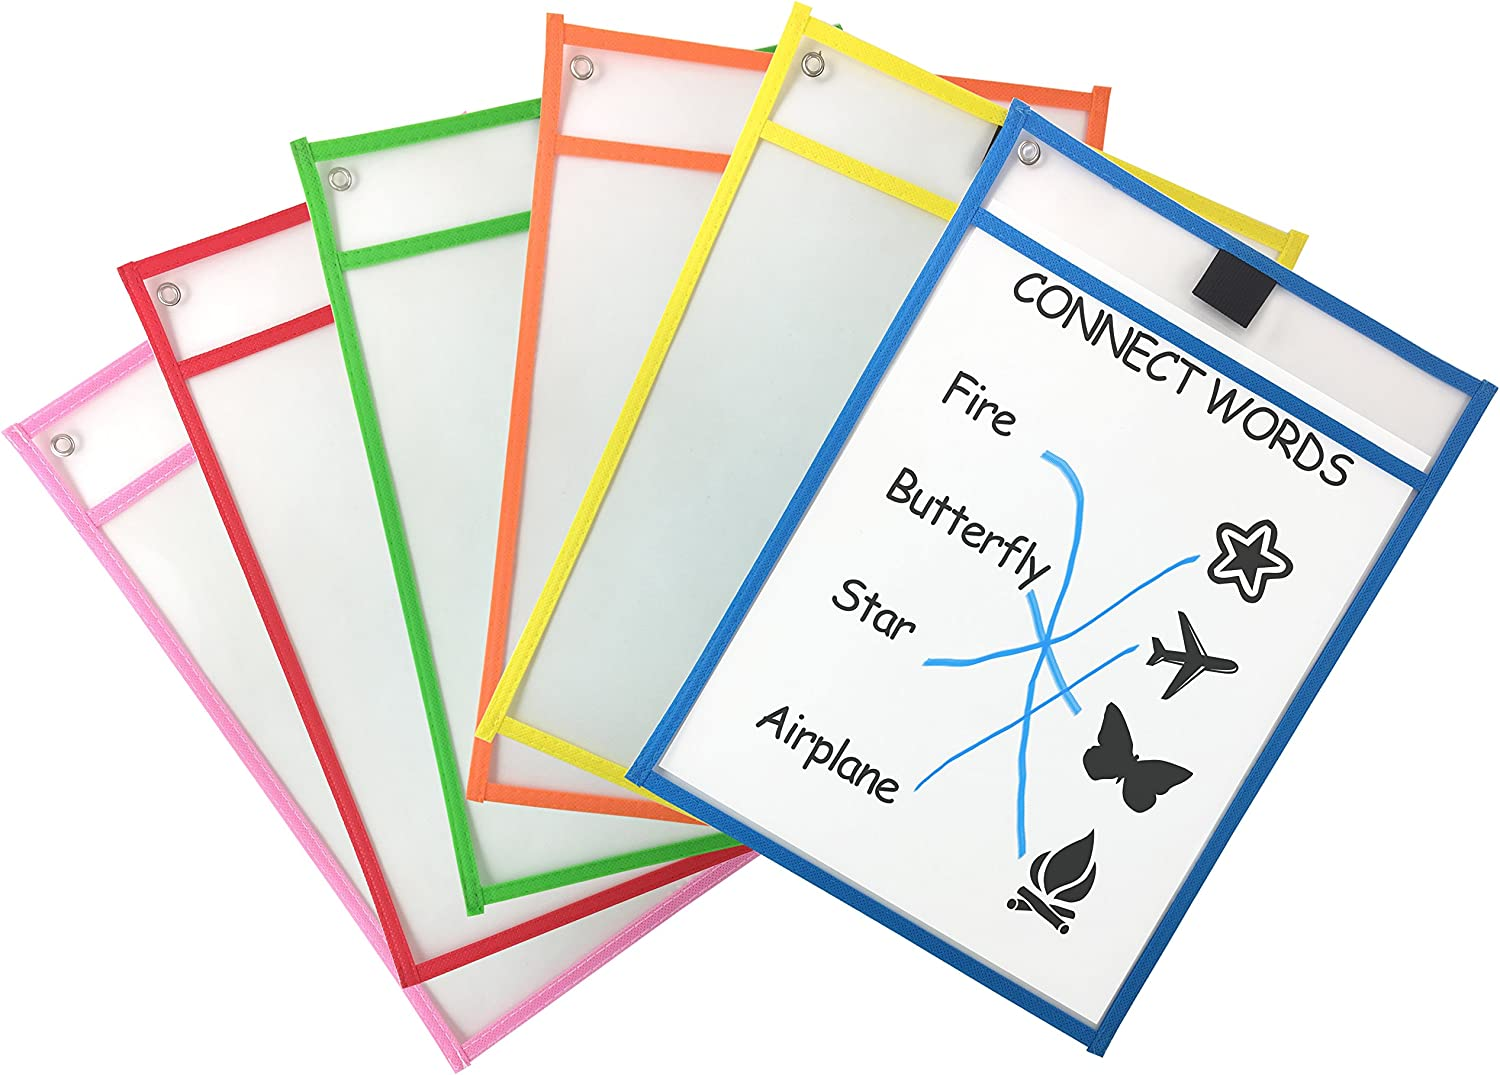 Clipco Dry Erase Pocket Sleeves Assorted Colors (6-Pack) : Office Products